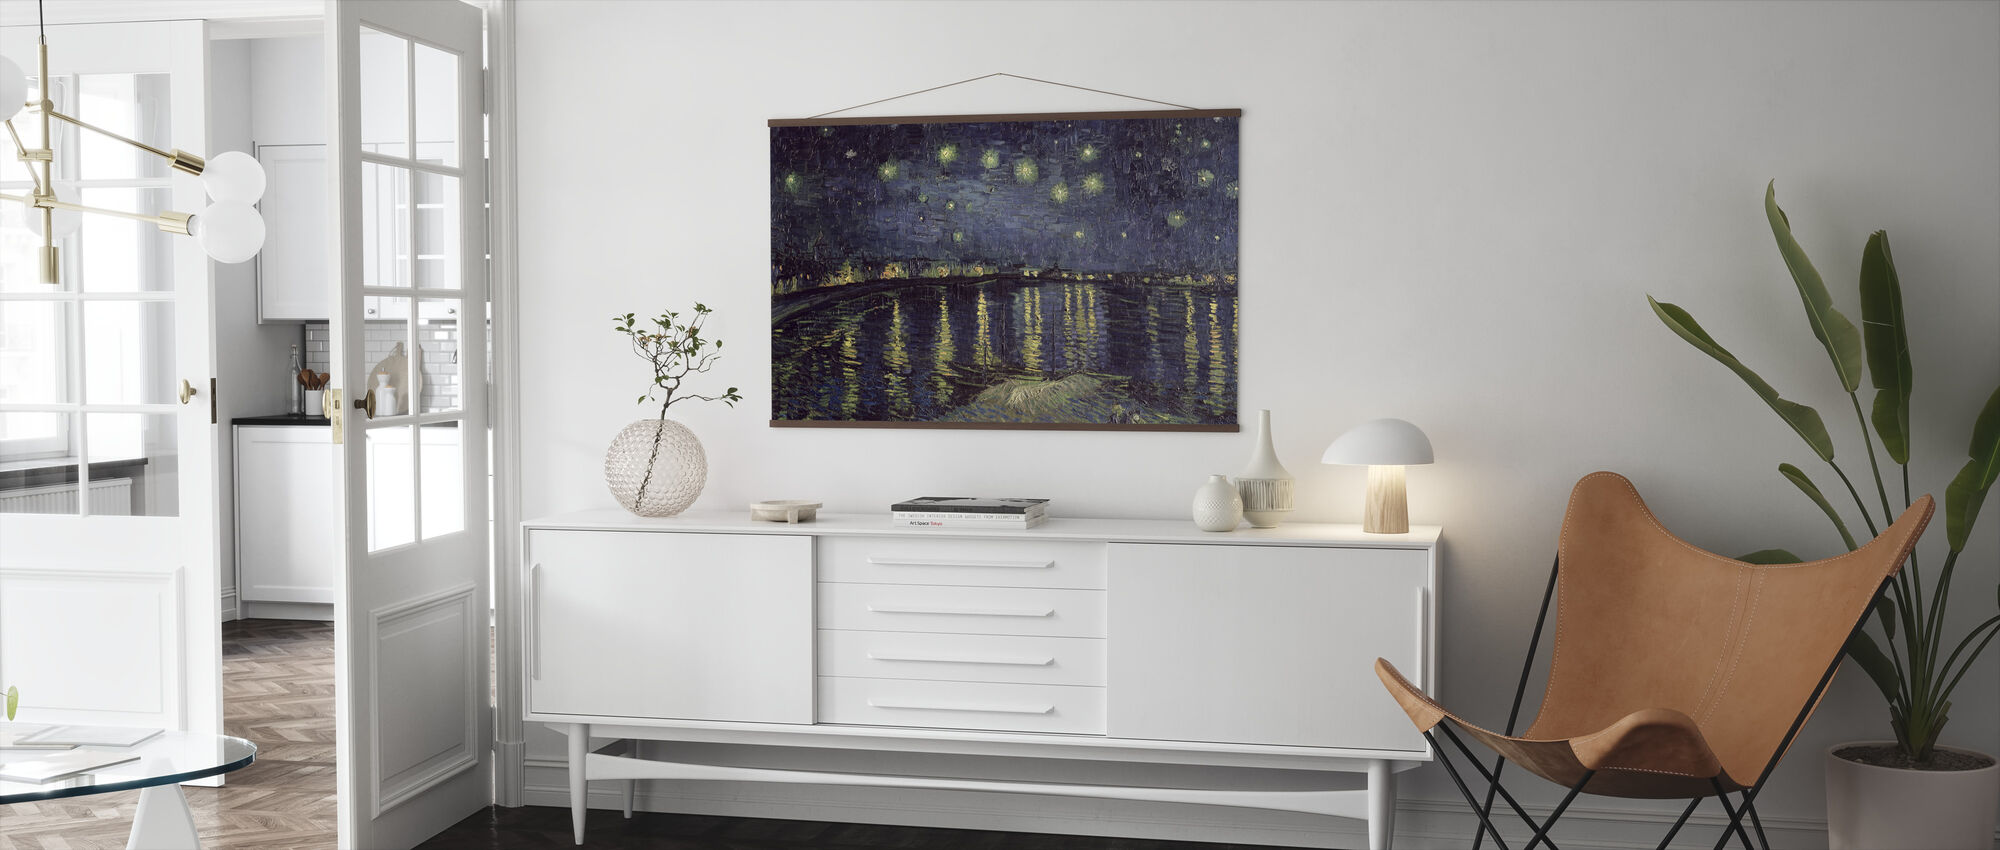 Starry Night - Vincent van Gogh - Juliste - Olohuone